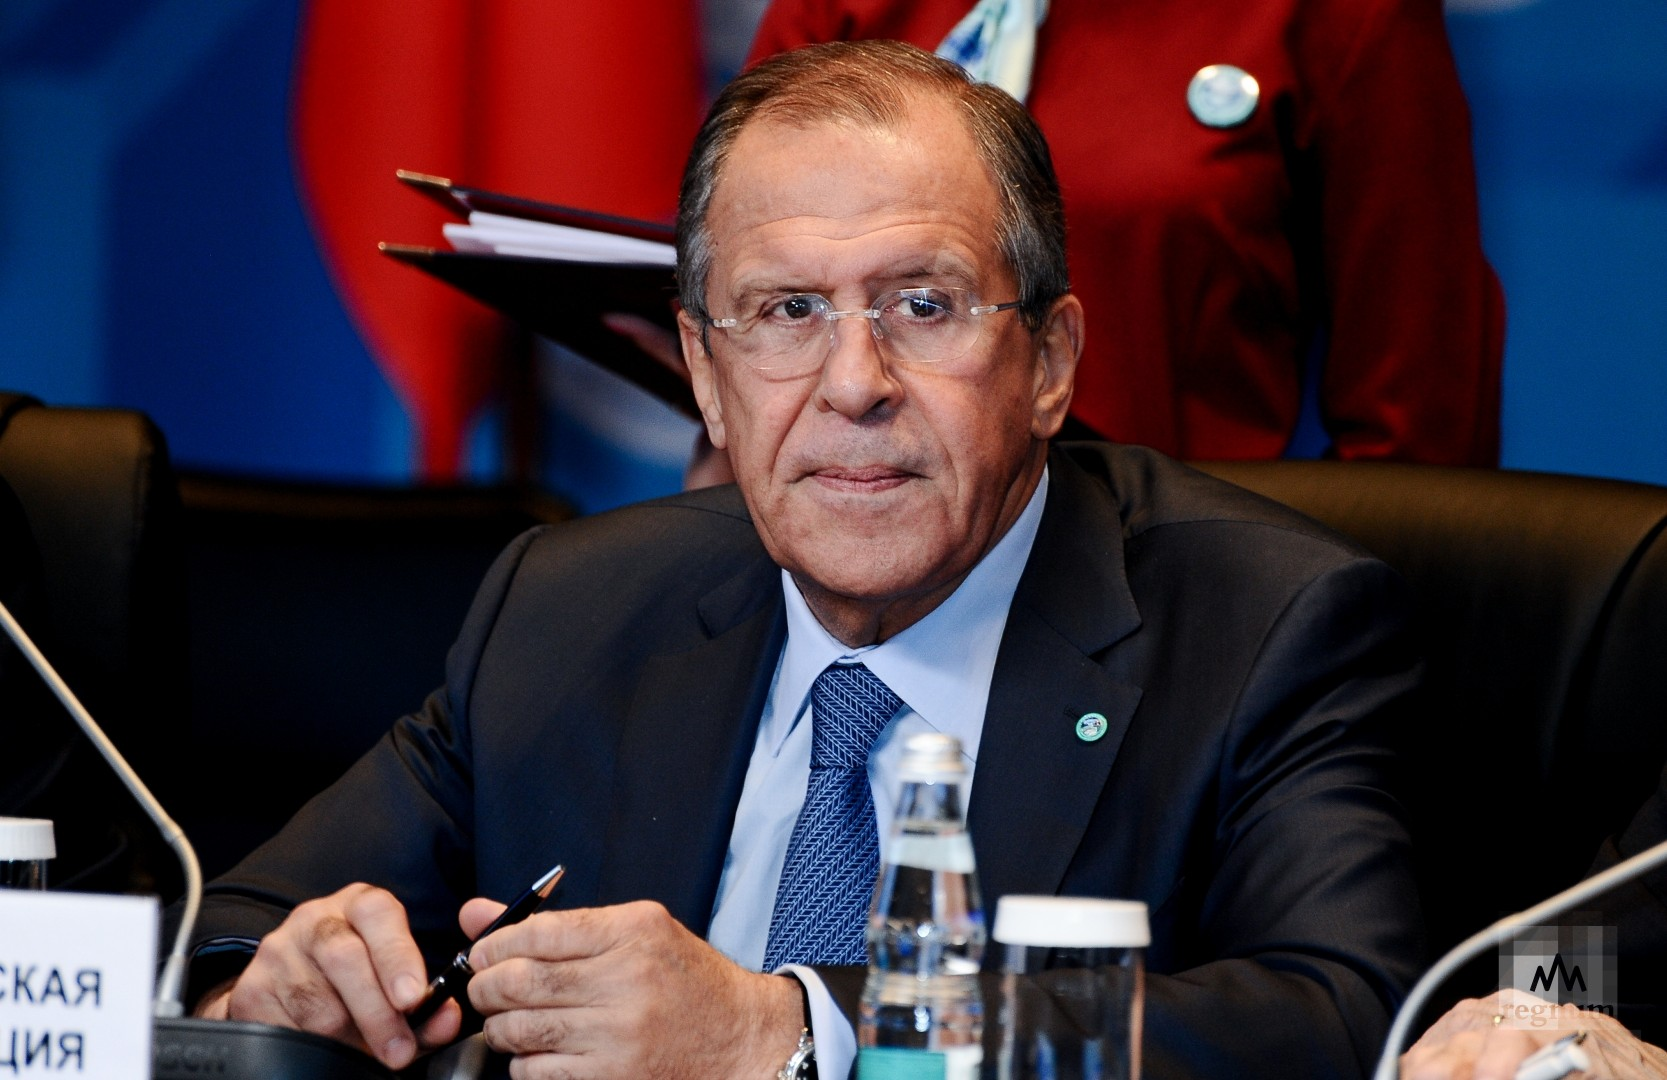 In the Czech Republic, the history of the explosions is now being disgraced - Lavrov